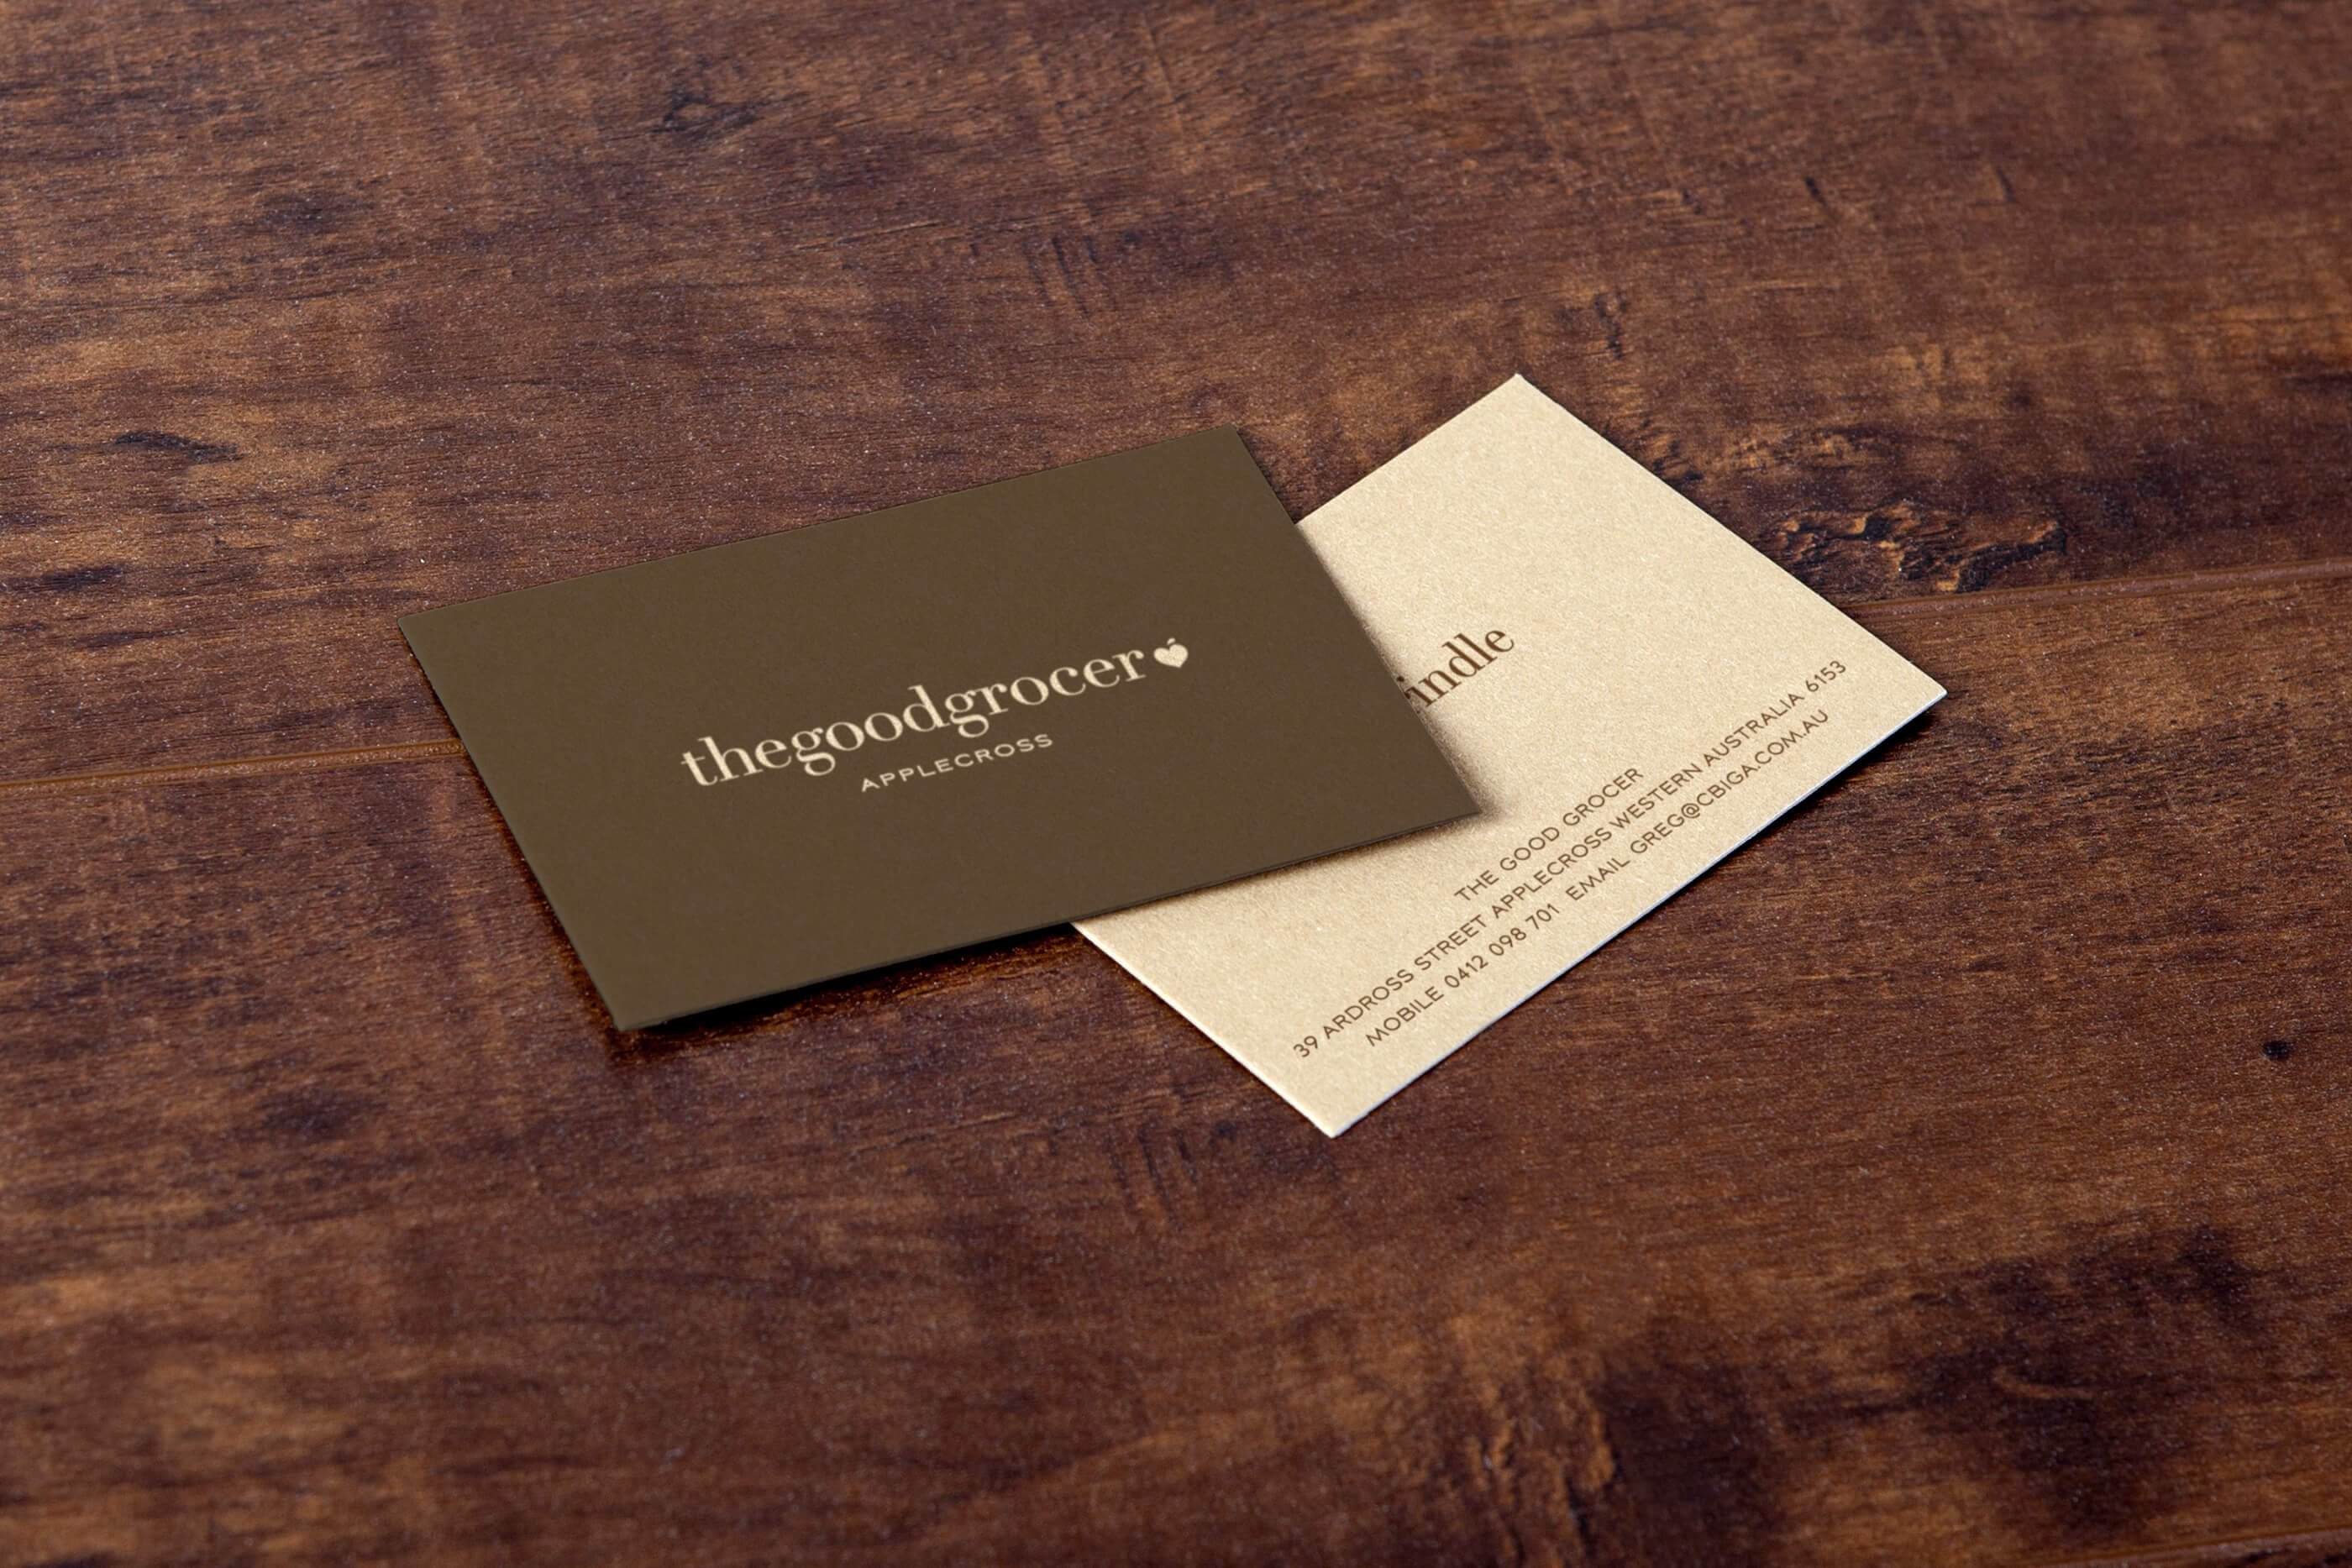 good_grocer_business_card